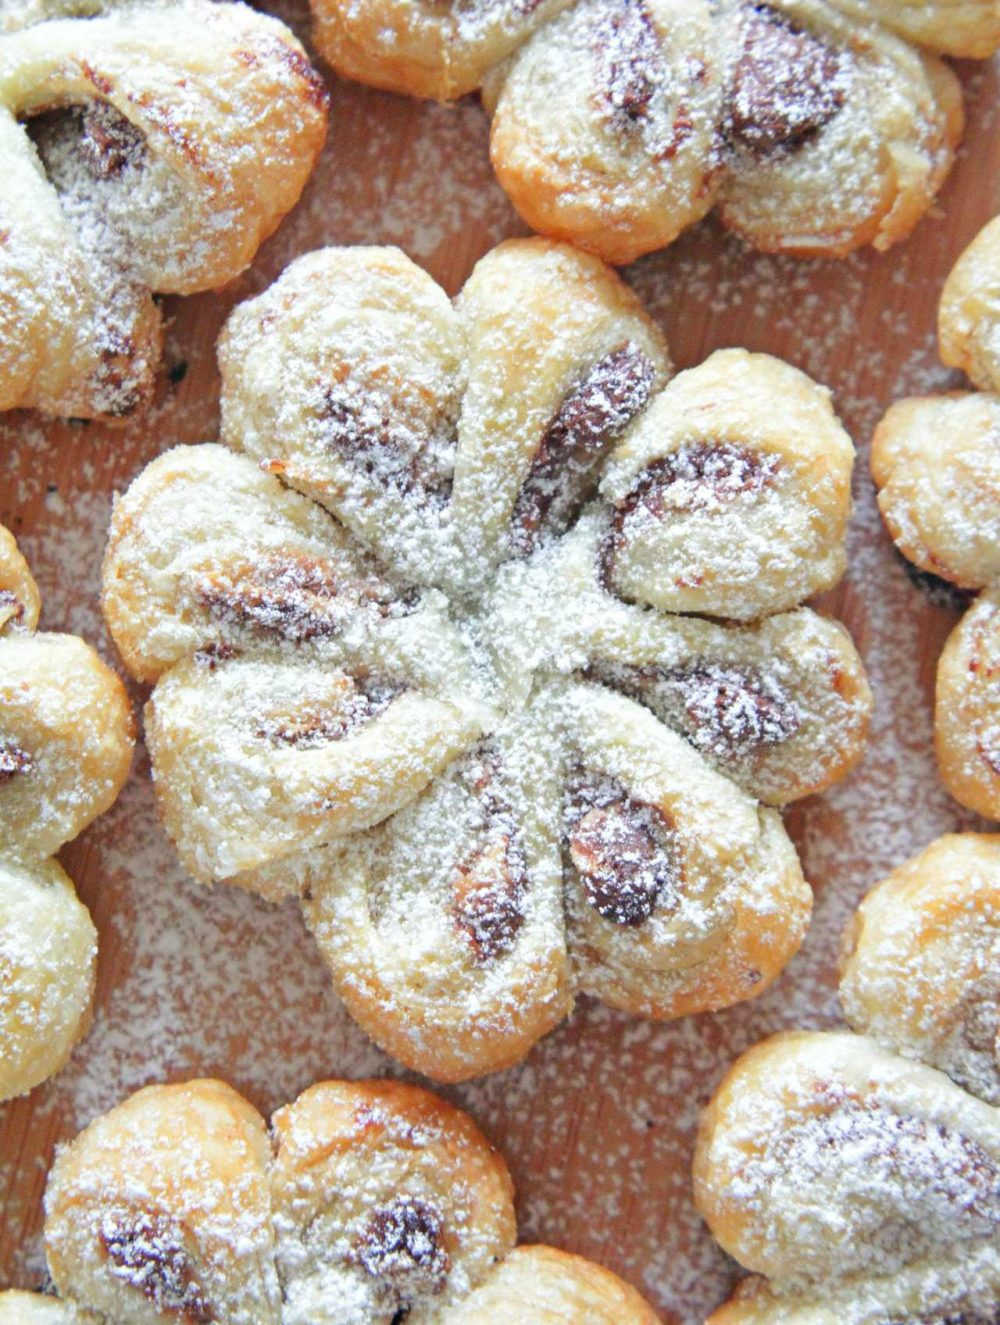 Pastry flowers with chocolate